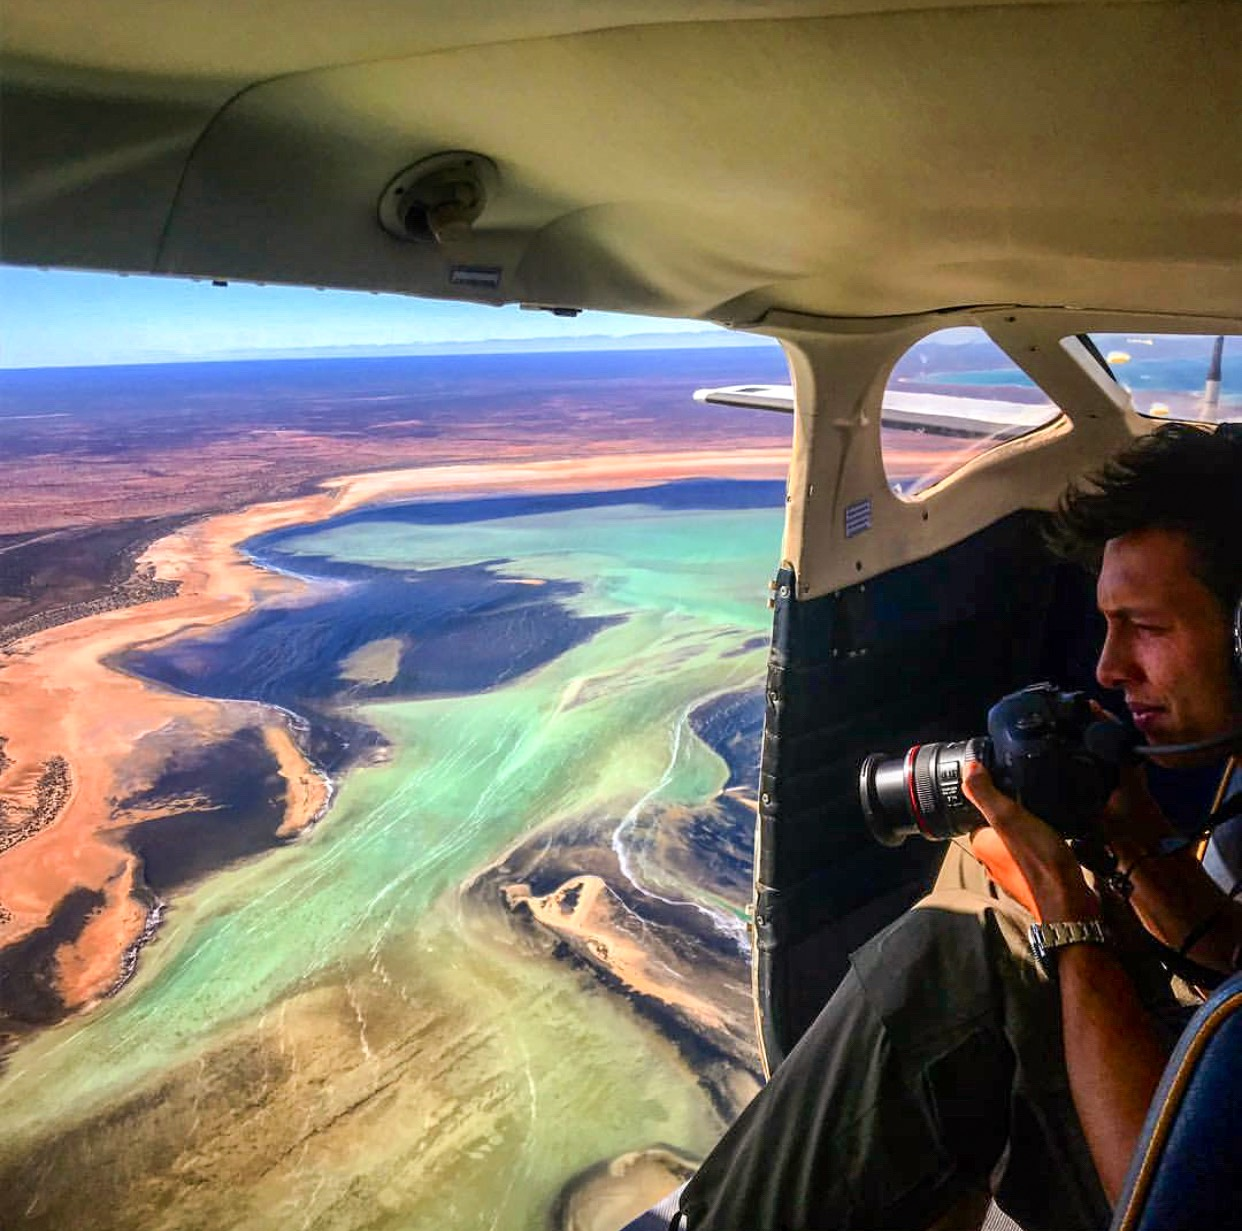 Steven Manolakis flying over the Shark Bay World Heritage Area, Western Australia. Photo by Shark Bay Aviation.